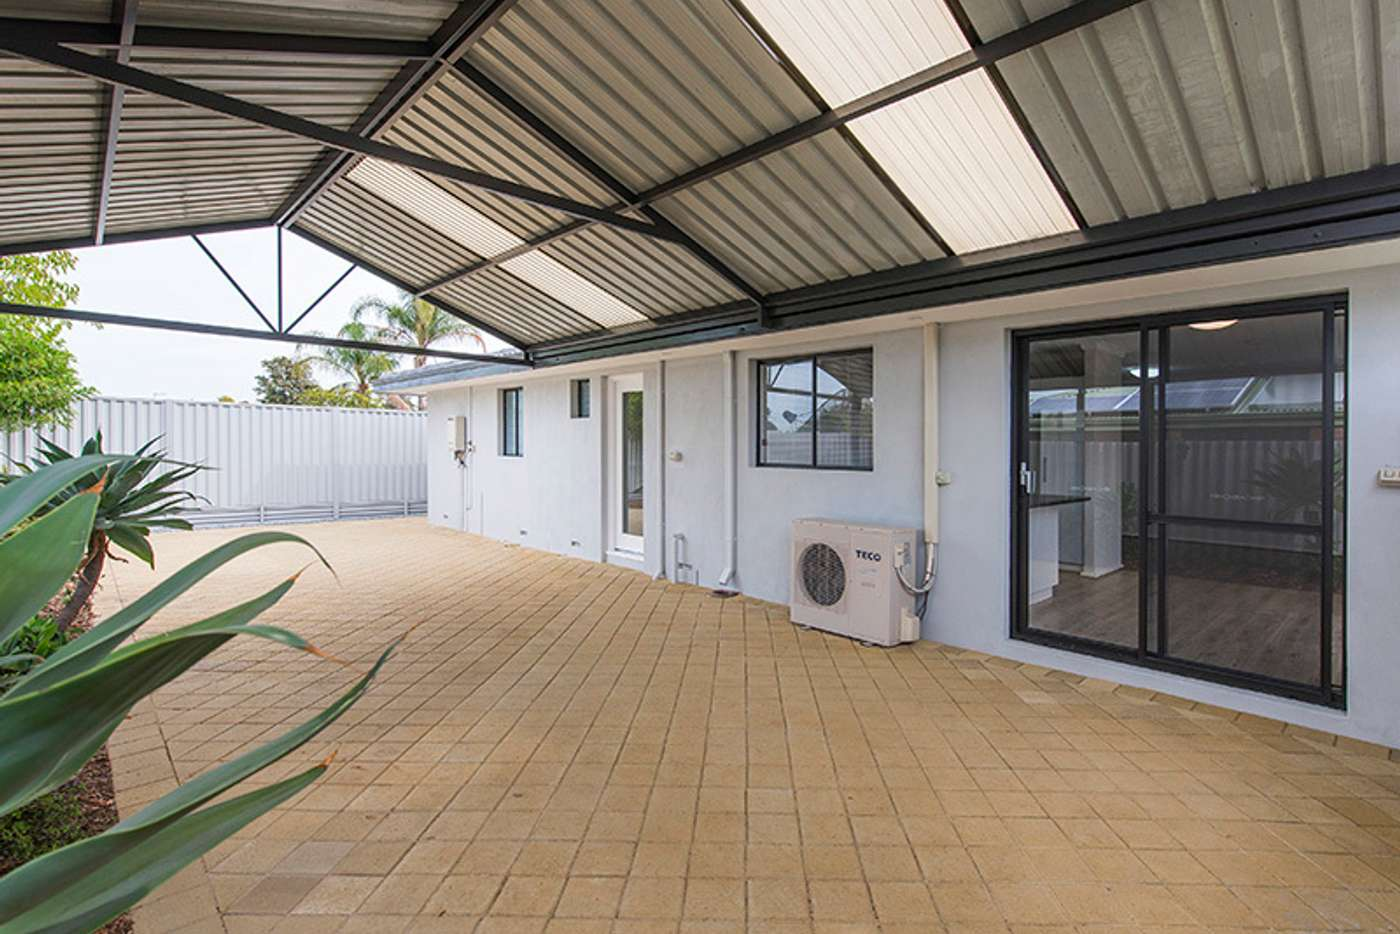 Seventh view of Homely house listing, 11 Meagher Way, Beechboro WA 6063